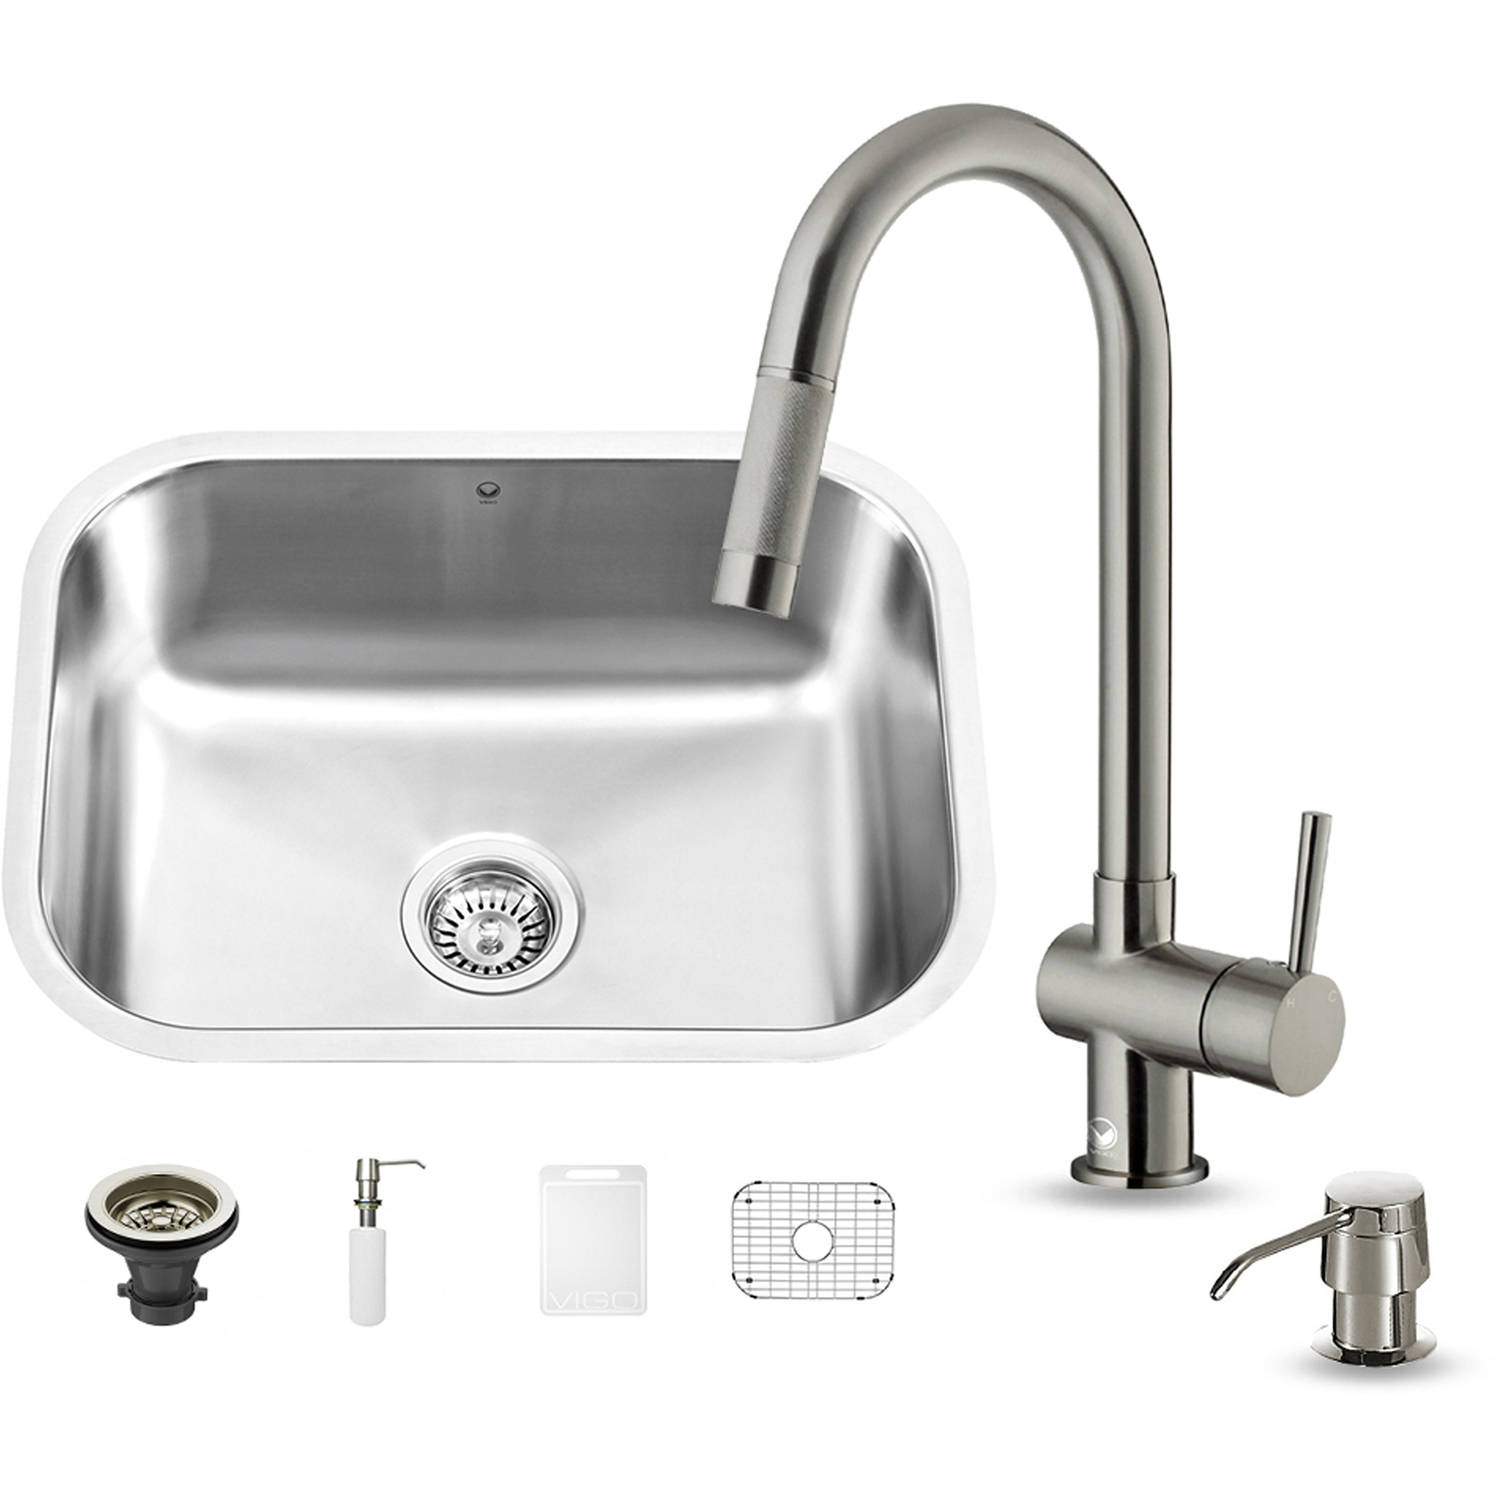 "Vigo All-in-One 23"" Undermount Stainless Steel Kitchen Sink and Faucet Set"